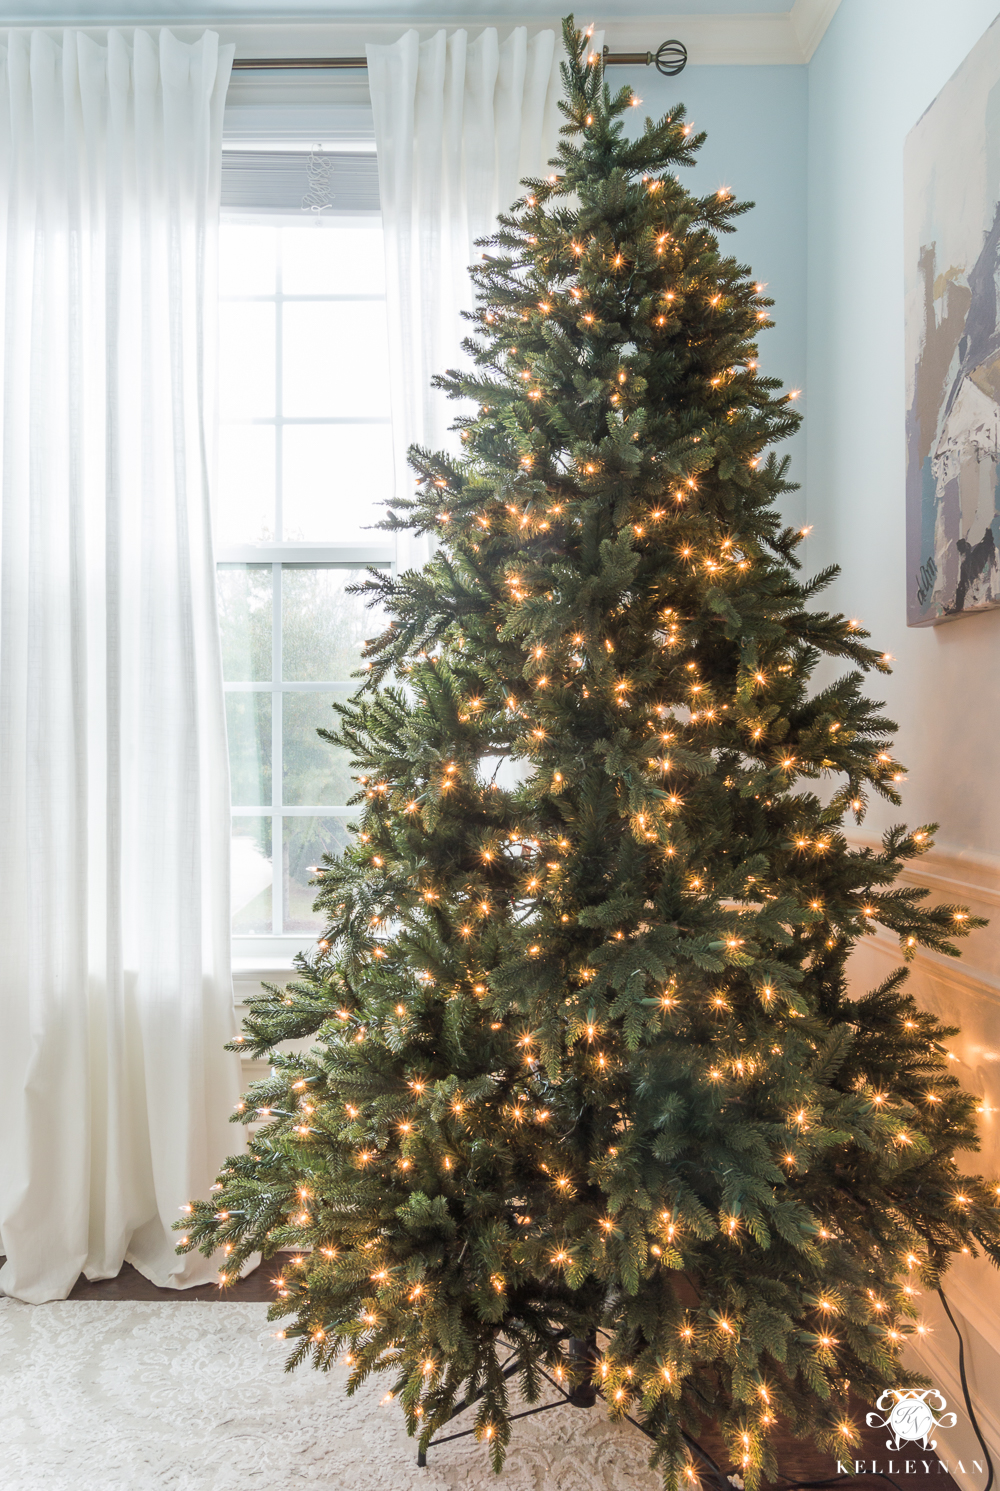 How To Decorate A Christmas Tree From Beginning To End